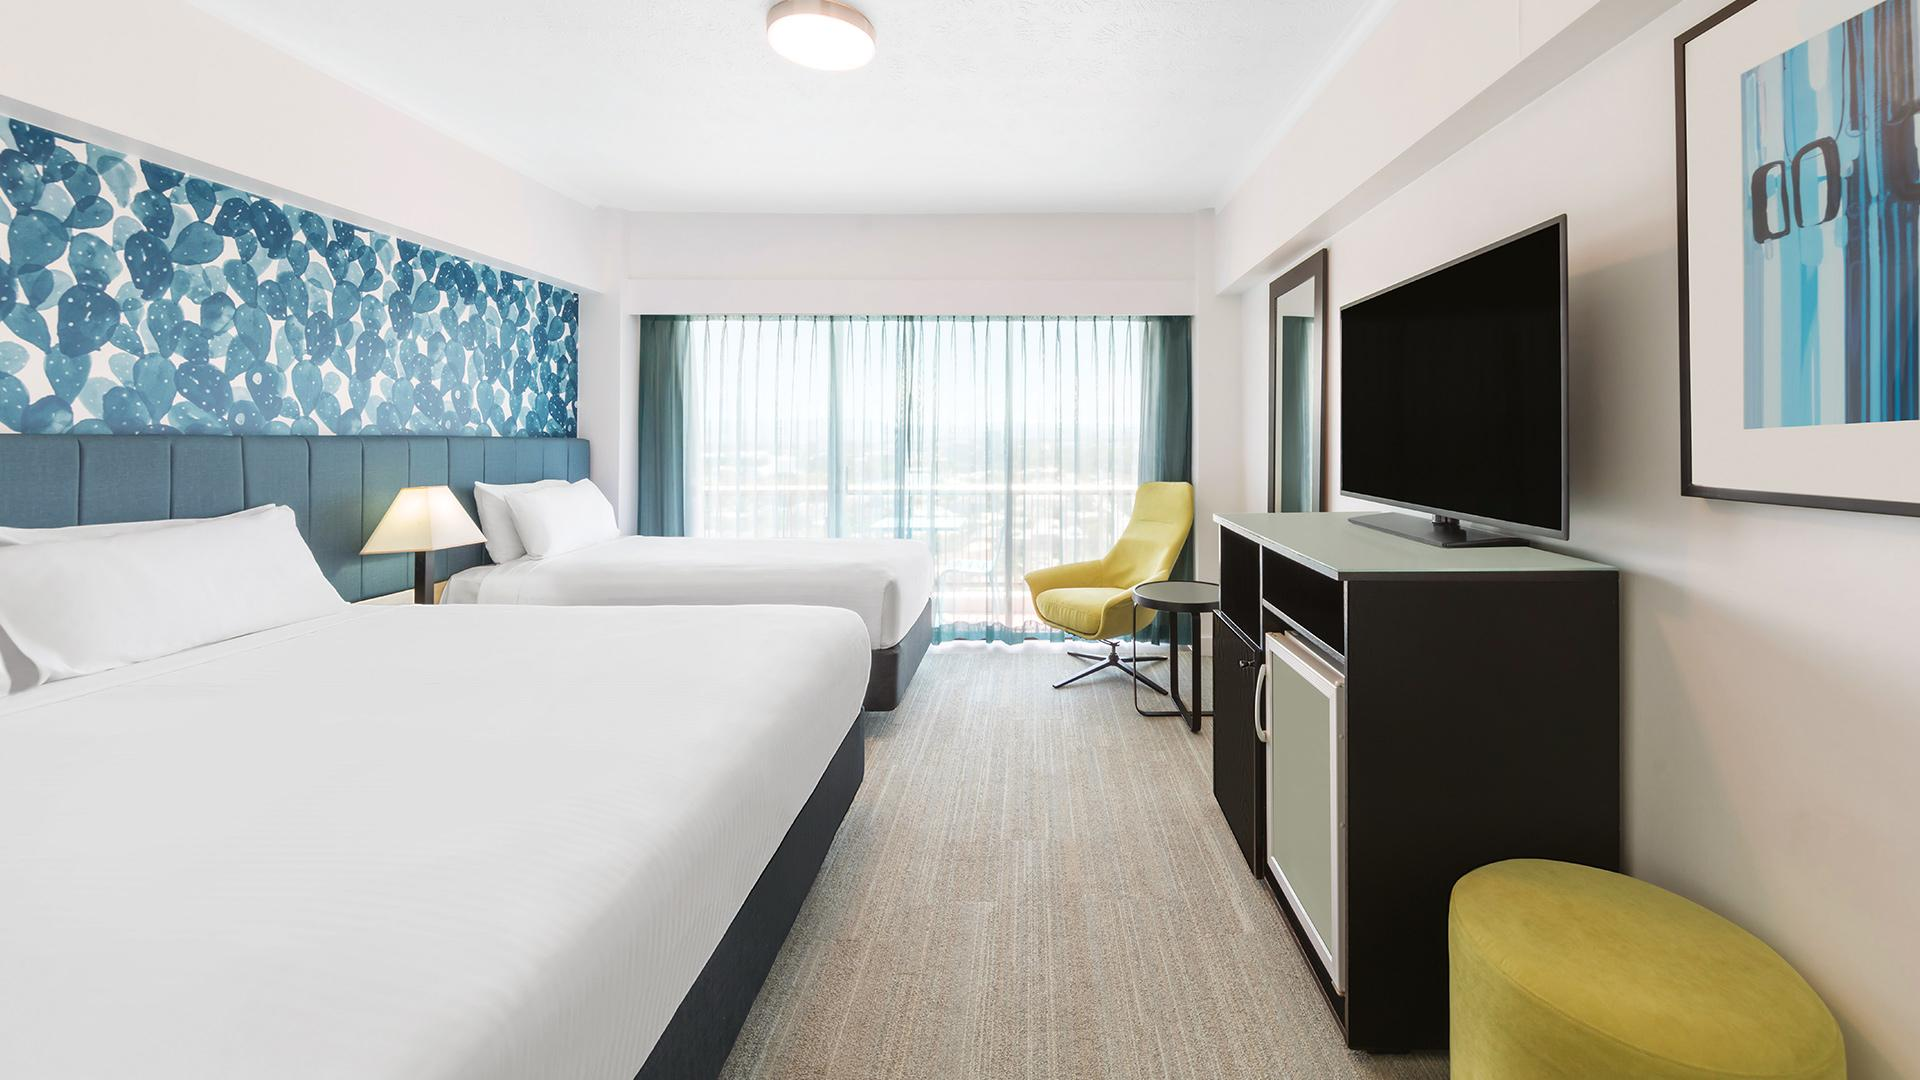 Oceanview Twin Room image 1 at Vibe Hotel Gold Coast by City of Gold Coast, Queensland, Australia